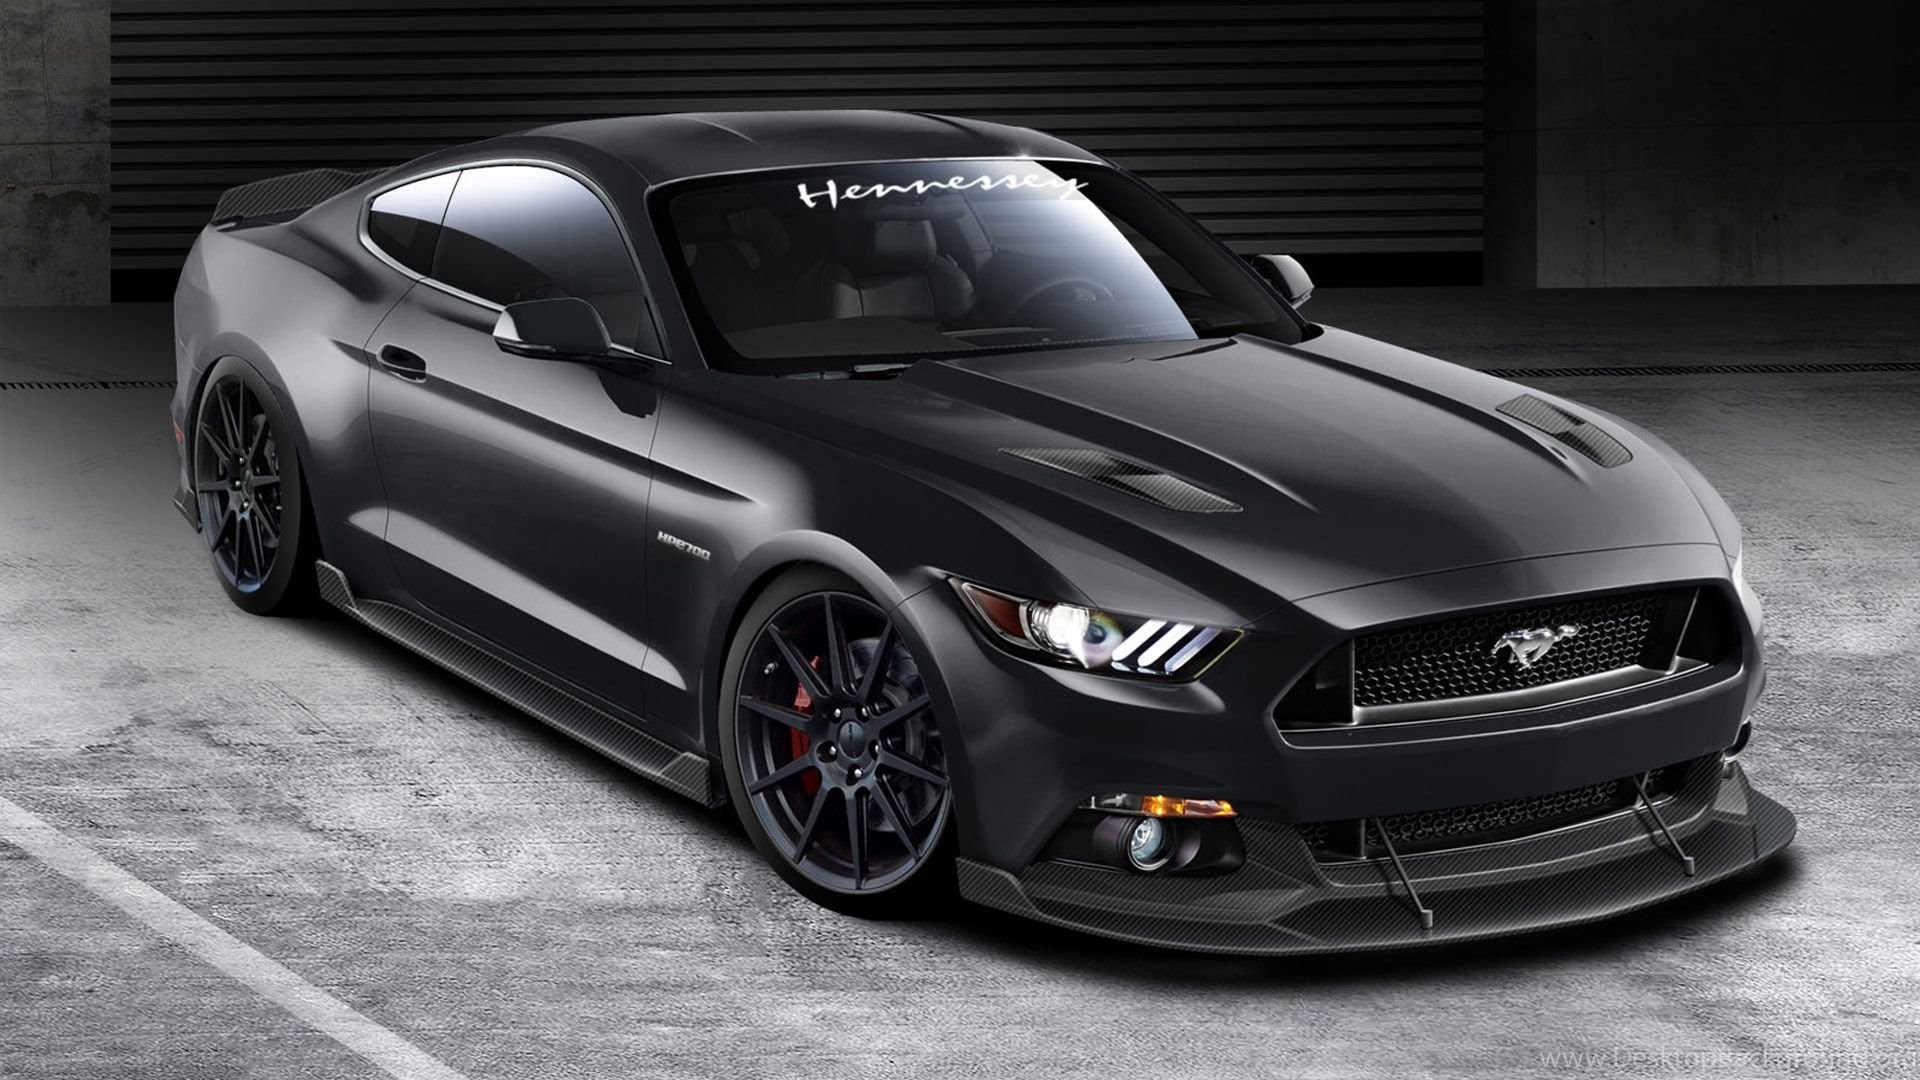 2015 hennessey ford mustang gt wallpapers desktop background - Ford mustang wallpaper download ...